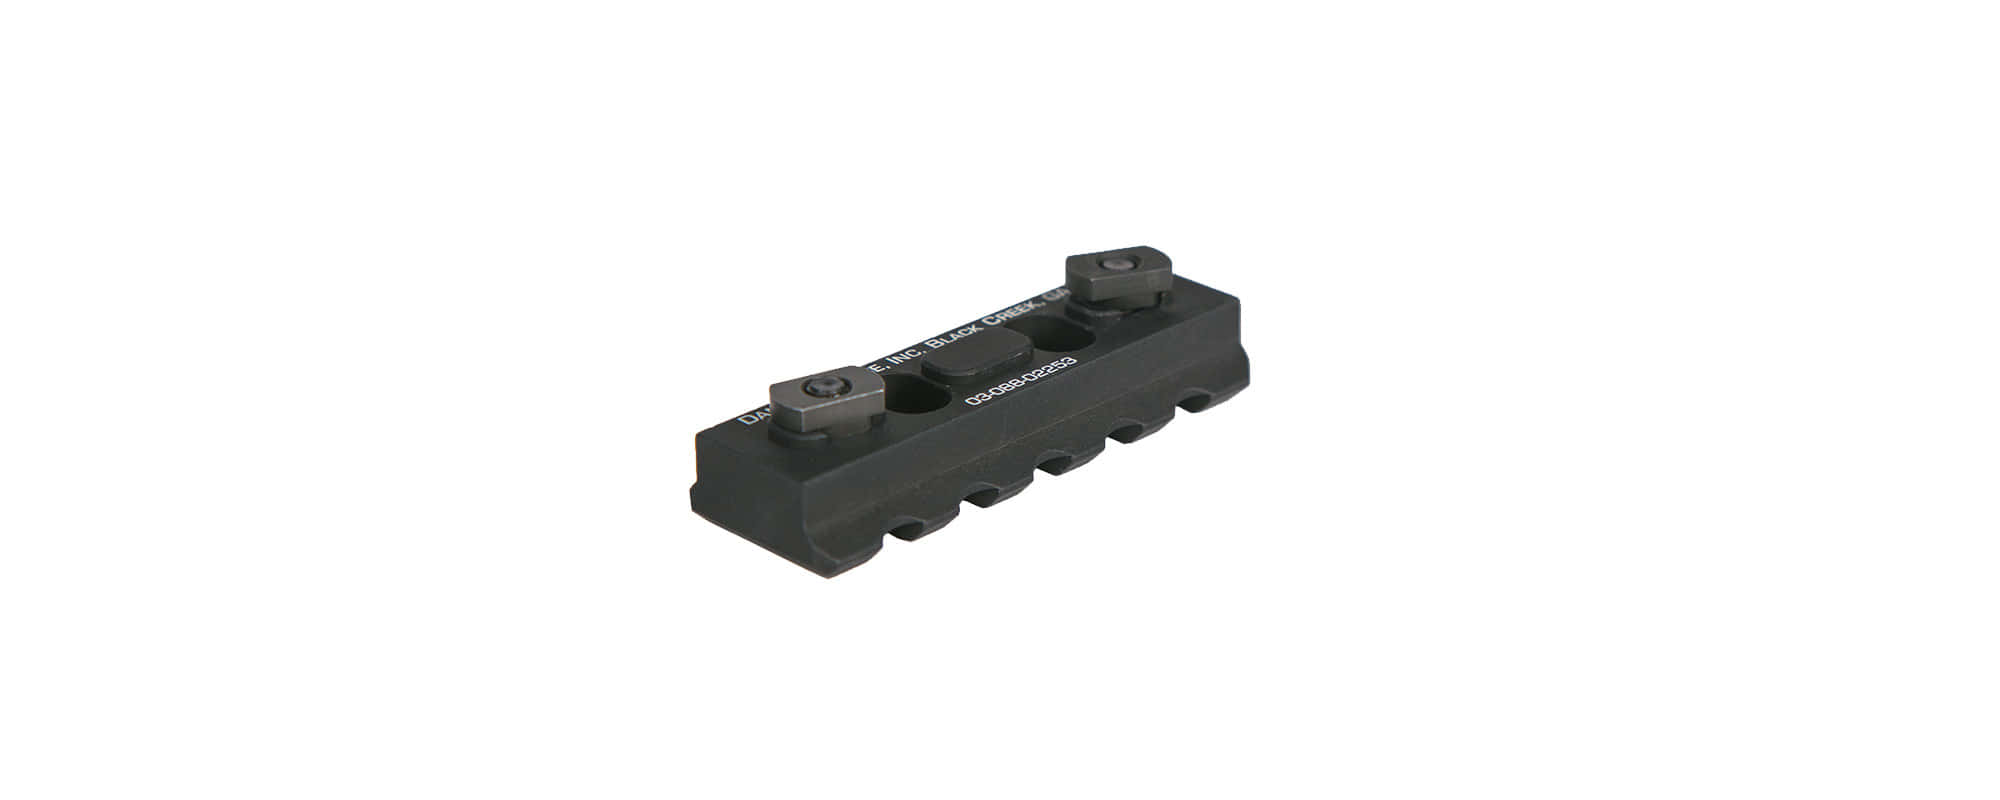 DDZ005-2-M-LOK rail section (21mm) - DDZ005